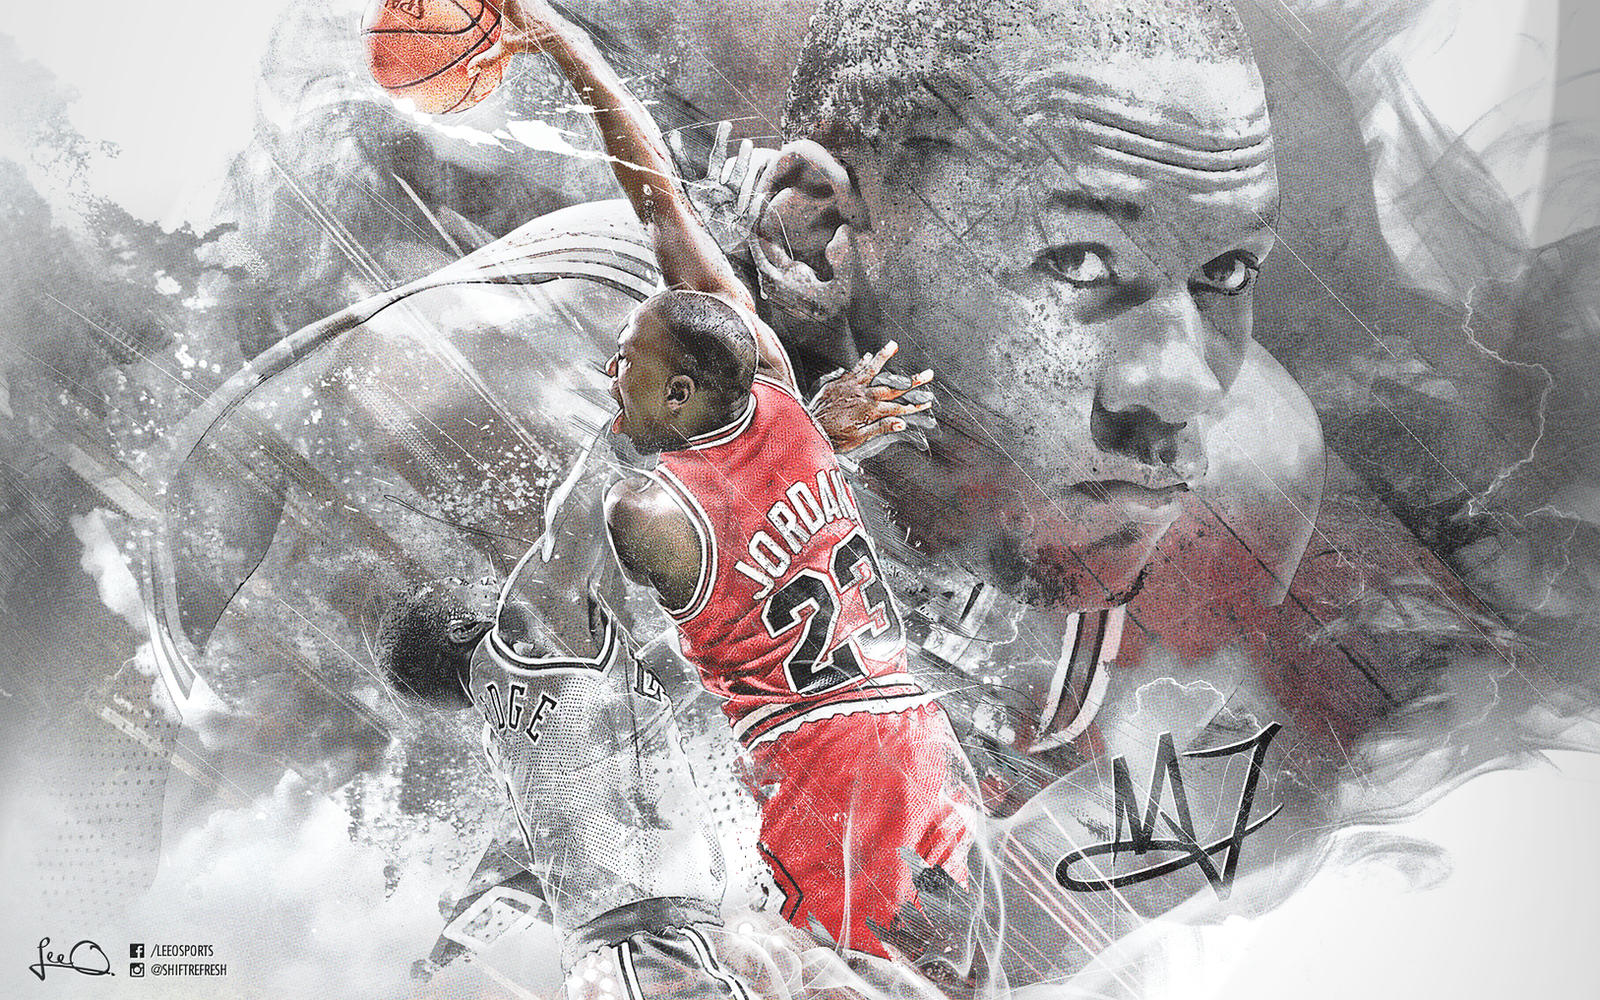 Michael Jordan 50th Wallpaper: Michael Jordan Wallpaper By Skythlee On DeviantArt